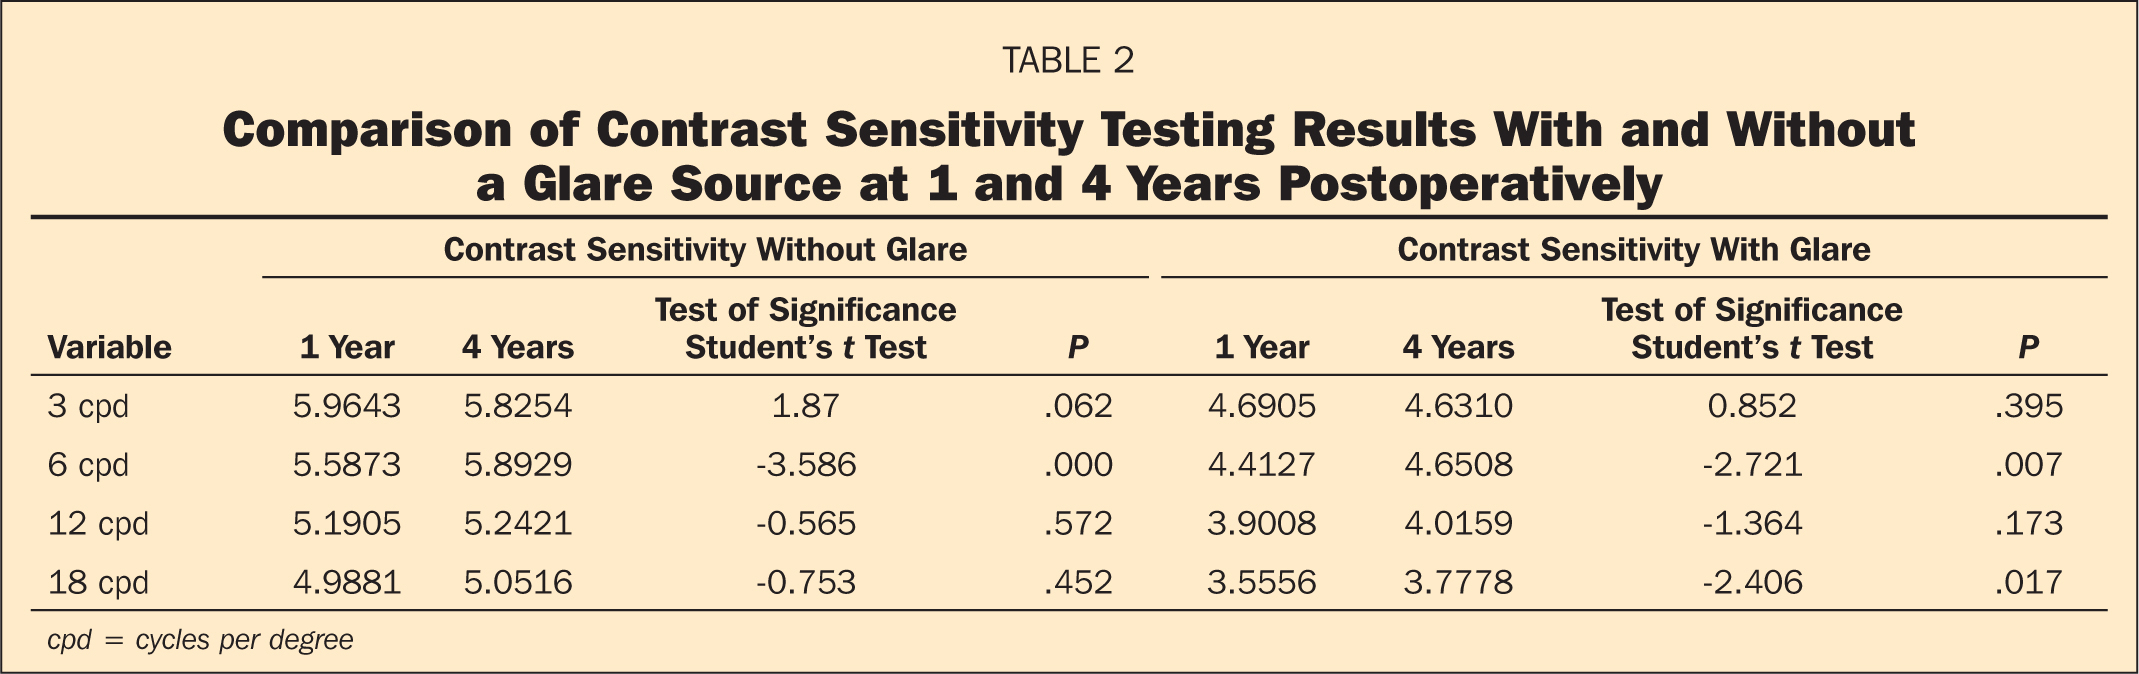 Comparison of Contrast Sensitivity Testing Results With and Without a Glare Source at 1 and 4 Years Postoperatively